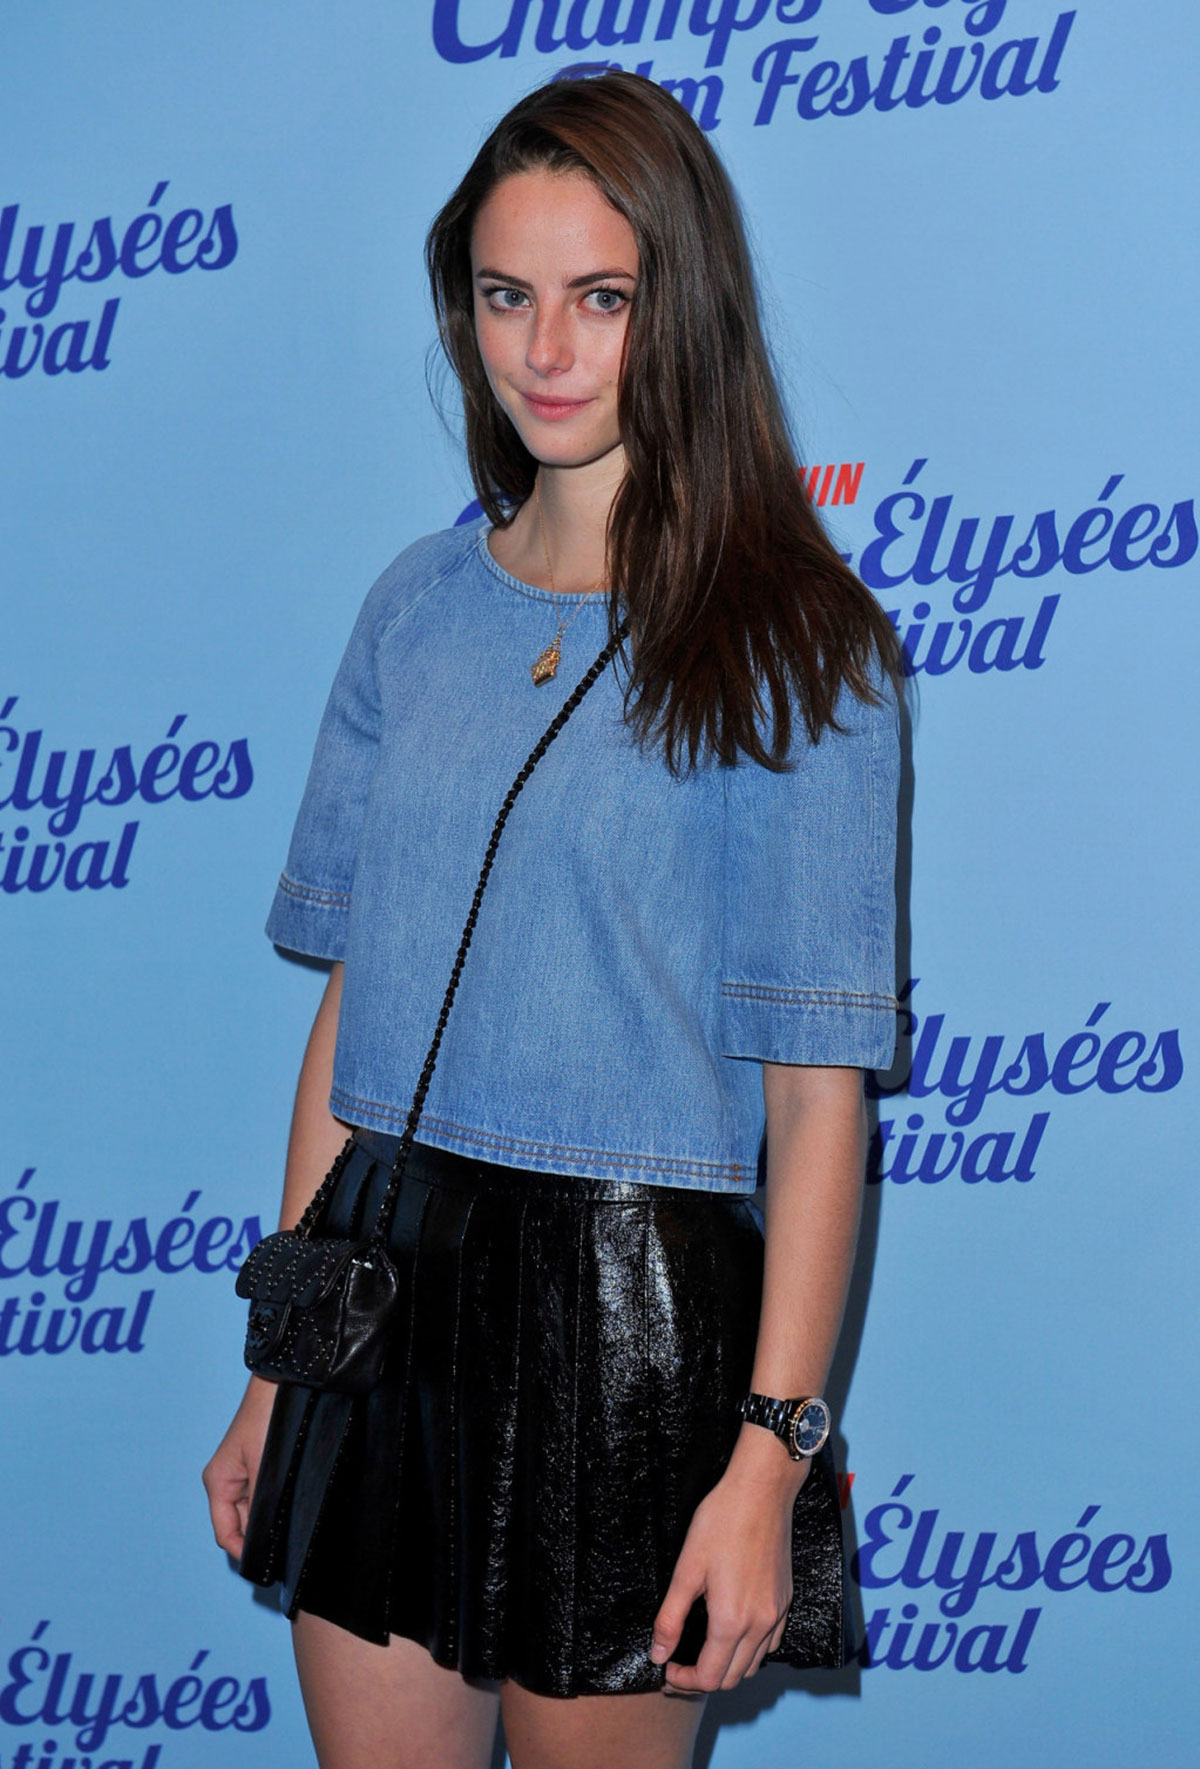 Kaya Scodelario attends The Truth About Emanuel Premiere